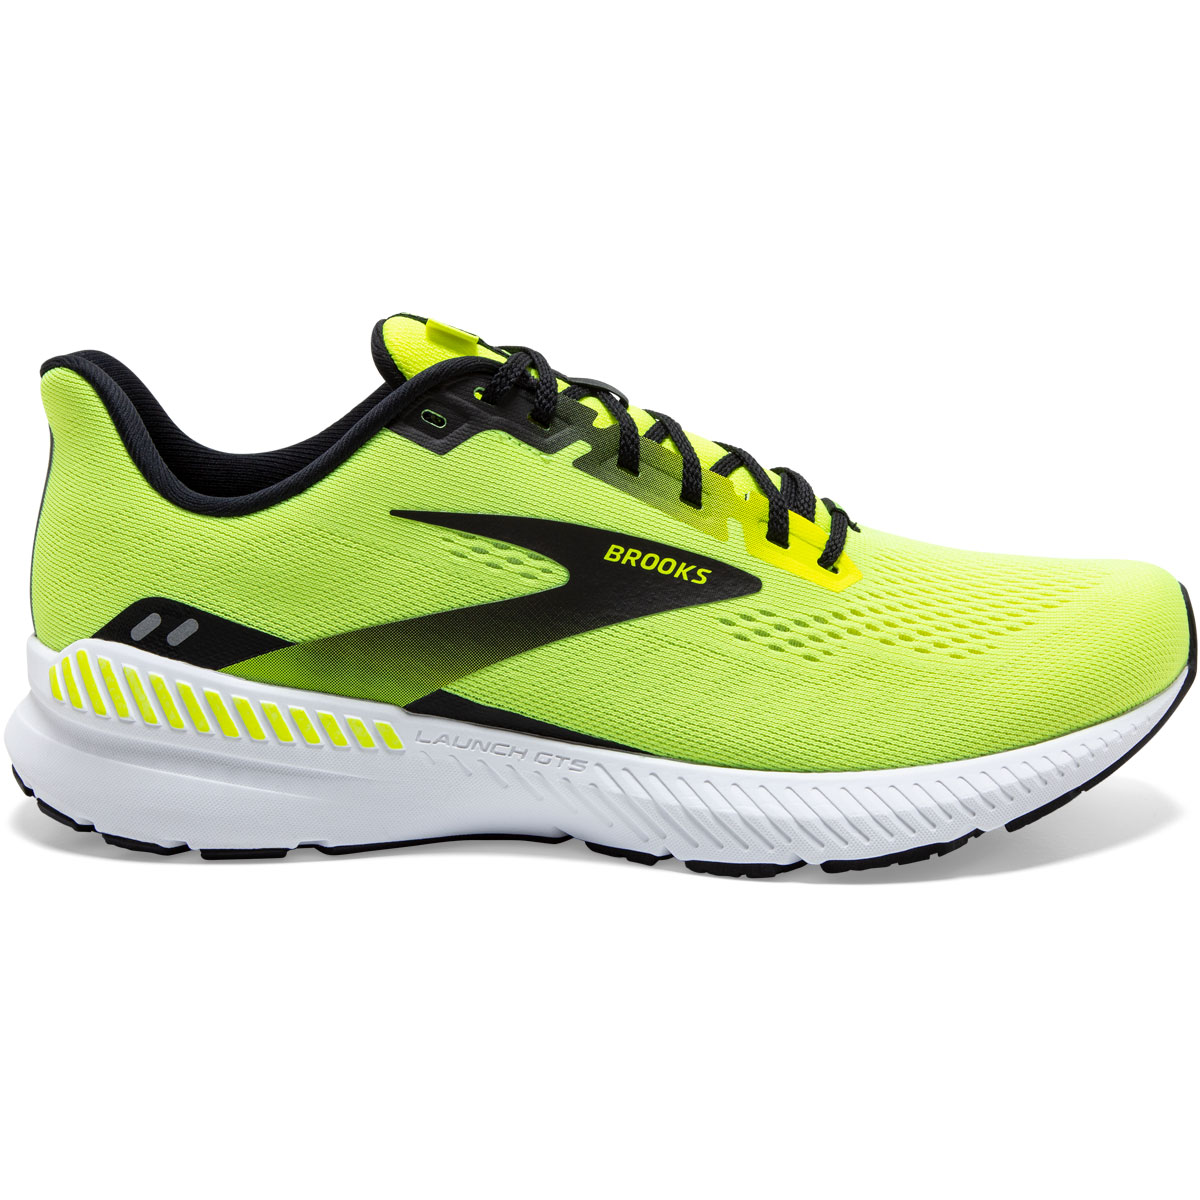 Men's Brooks Launch GTS 8 Running Shoe - Color: Nightlife/Black - Size: 7 - Width: Regular, Nightlife/Black, large, image 1